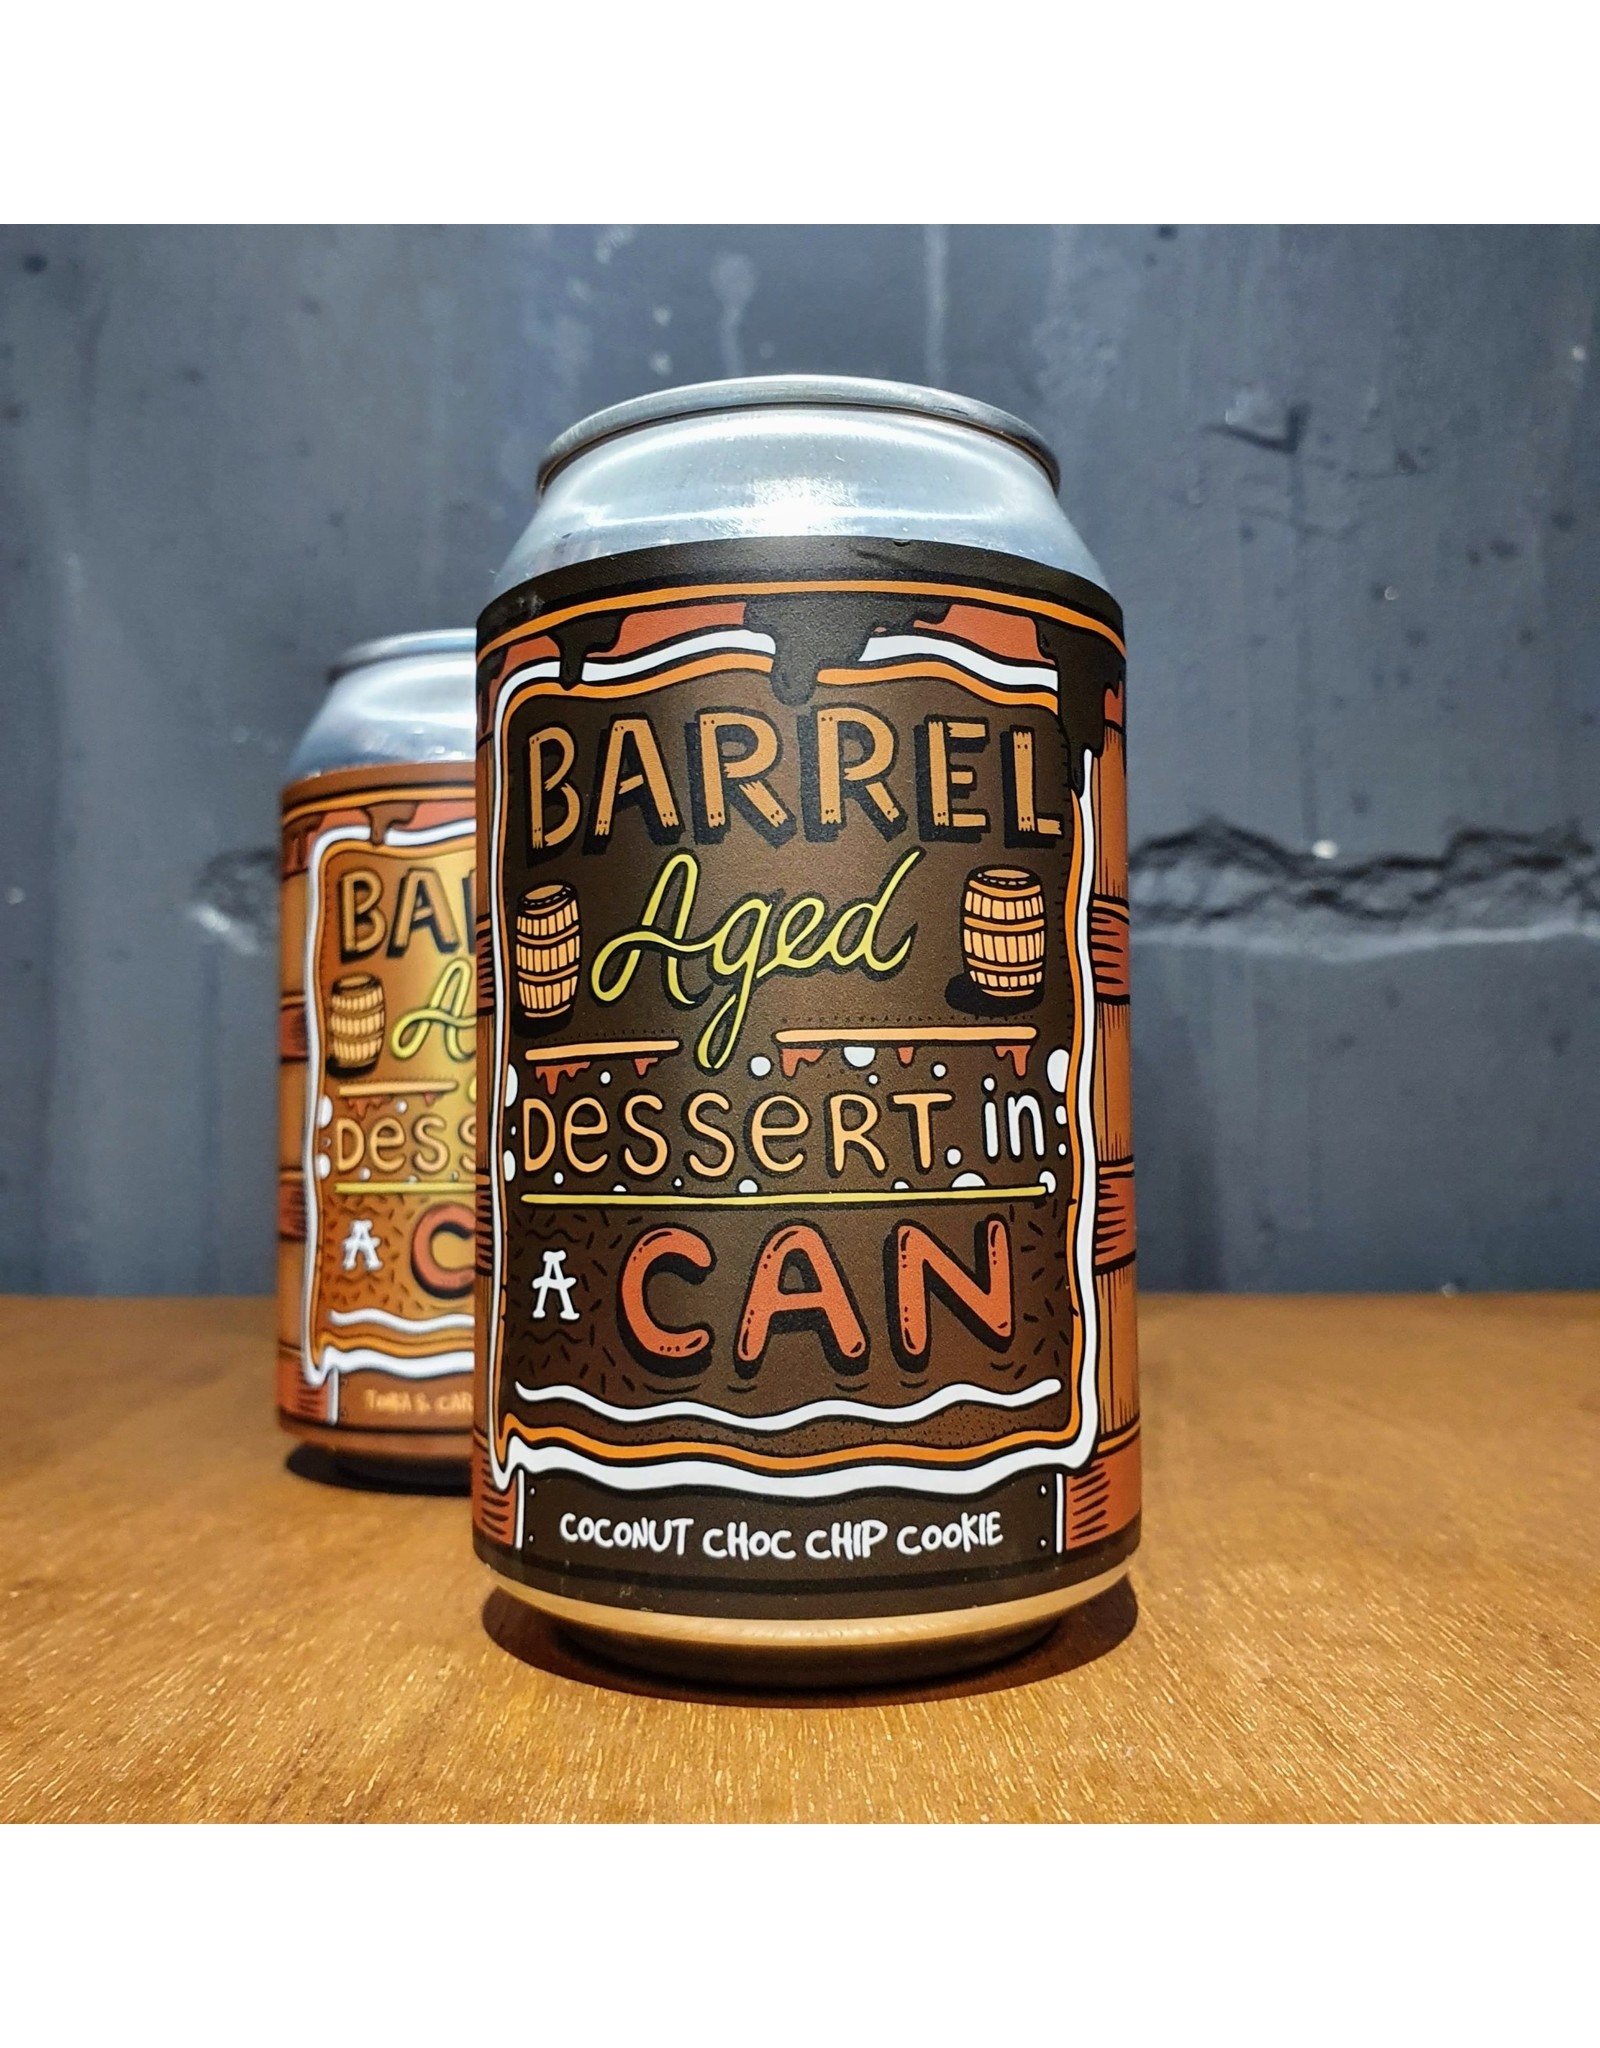 Amundsen Amundsen: Barrel Aged Dessert In A Can - Coconut Choc Chip Cookie